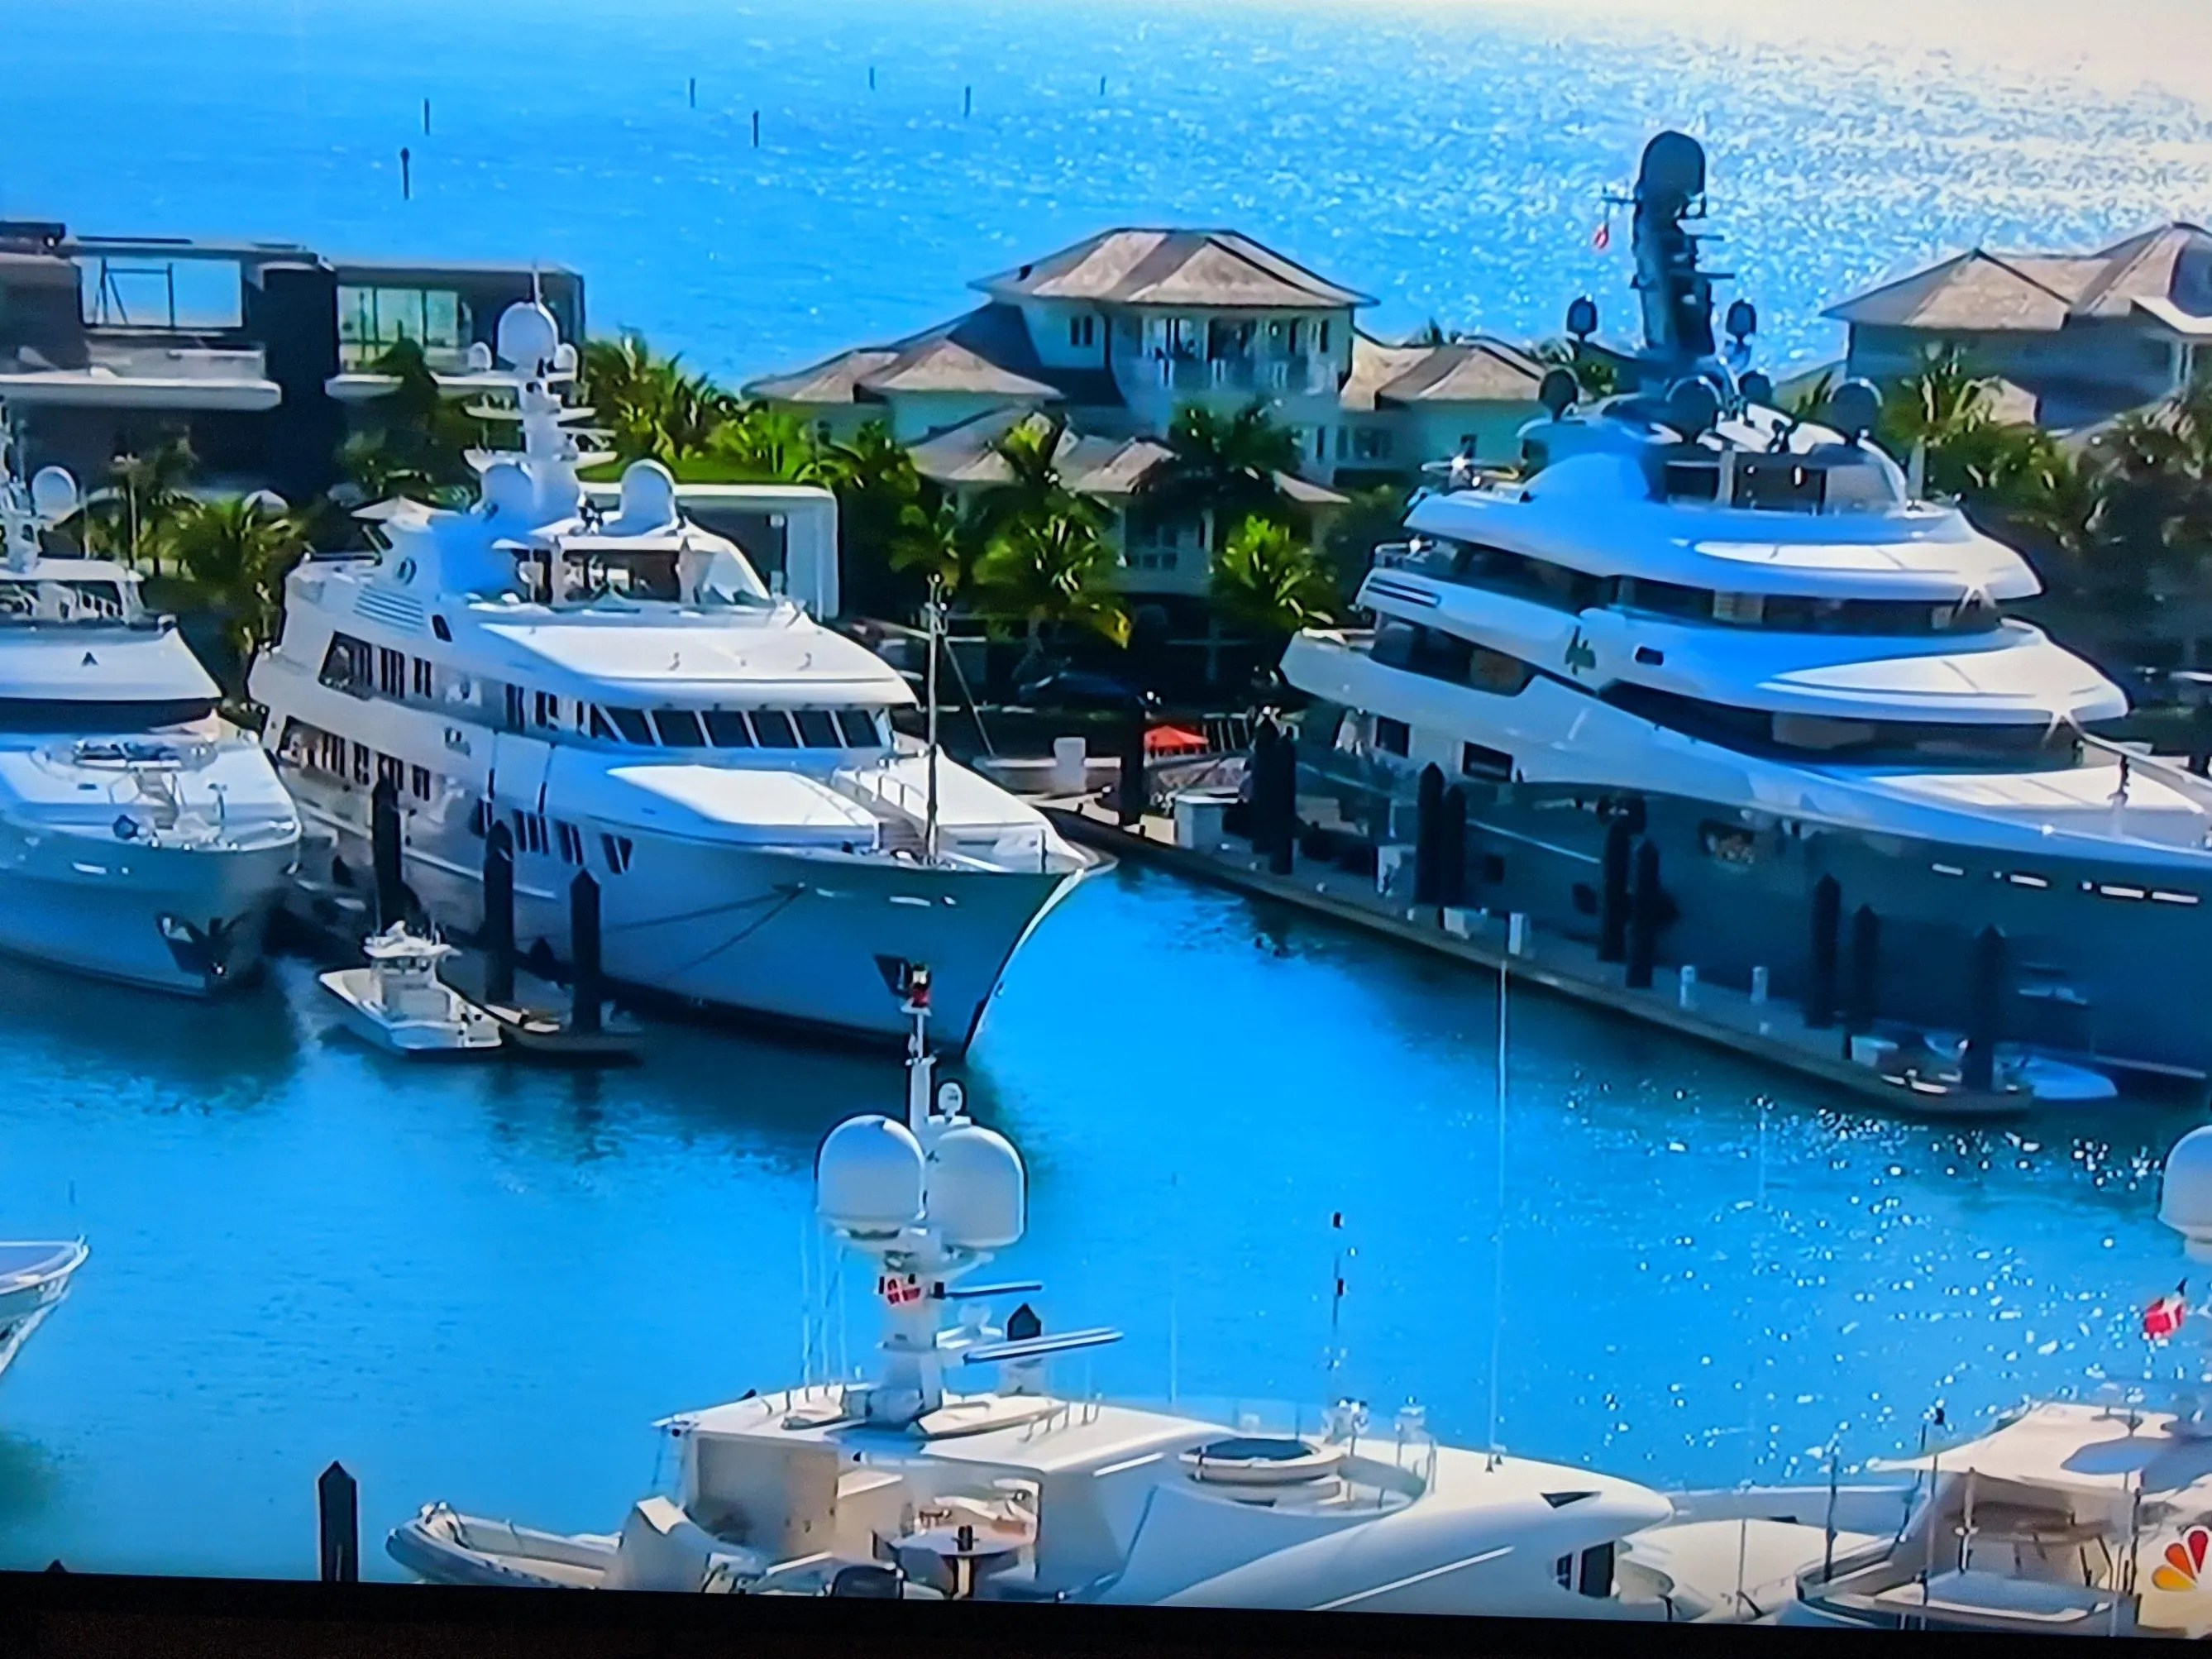 tiger woods yacht 2019